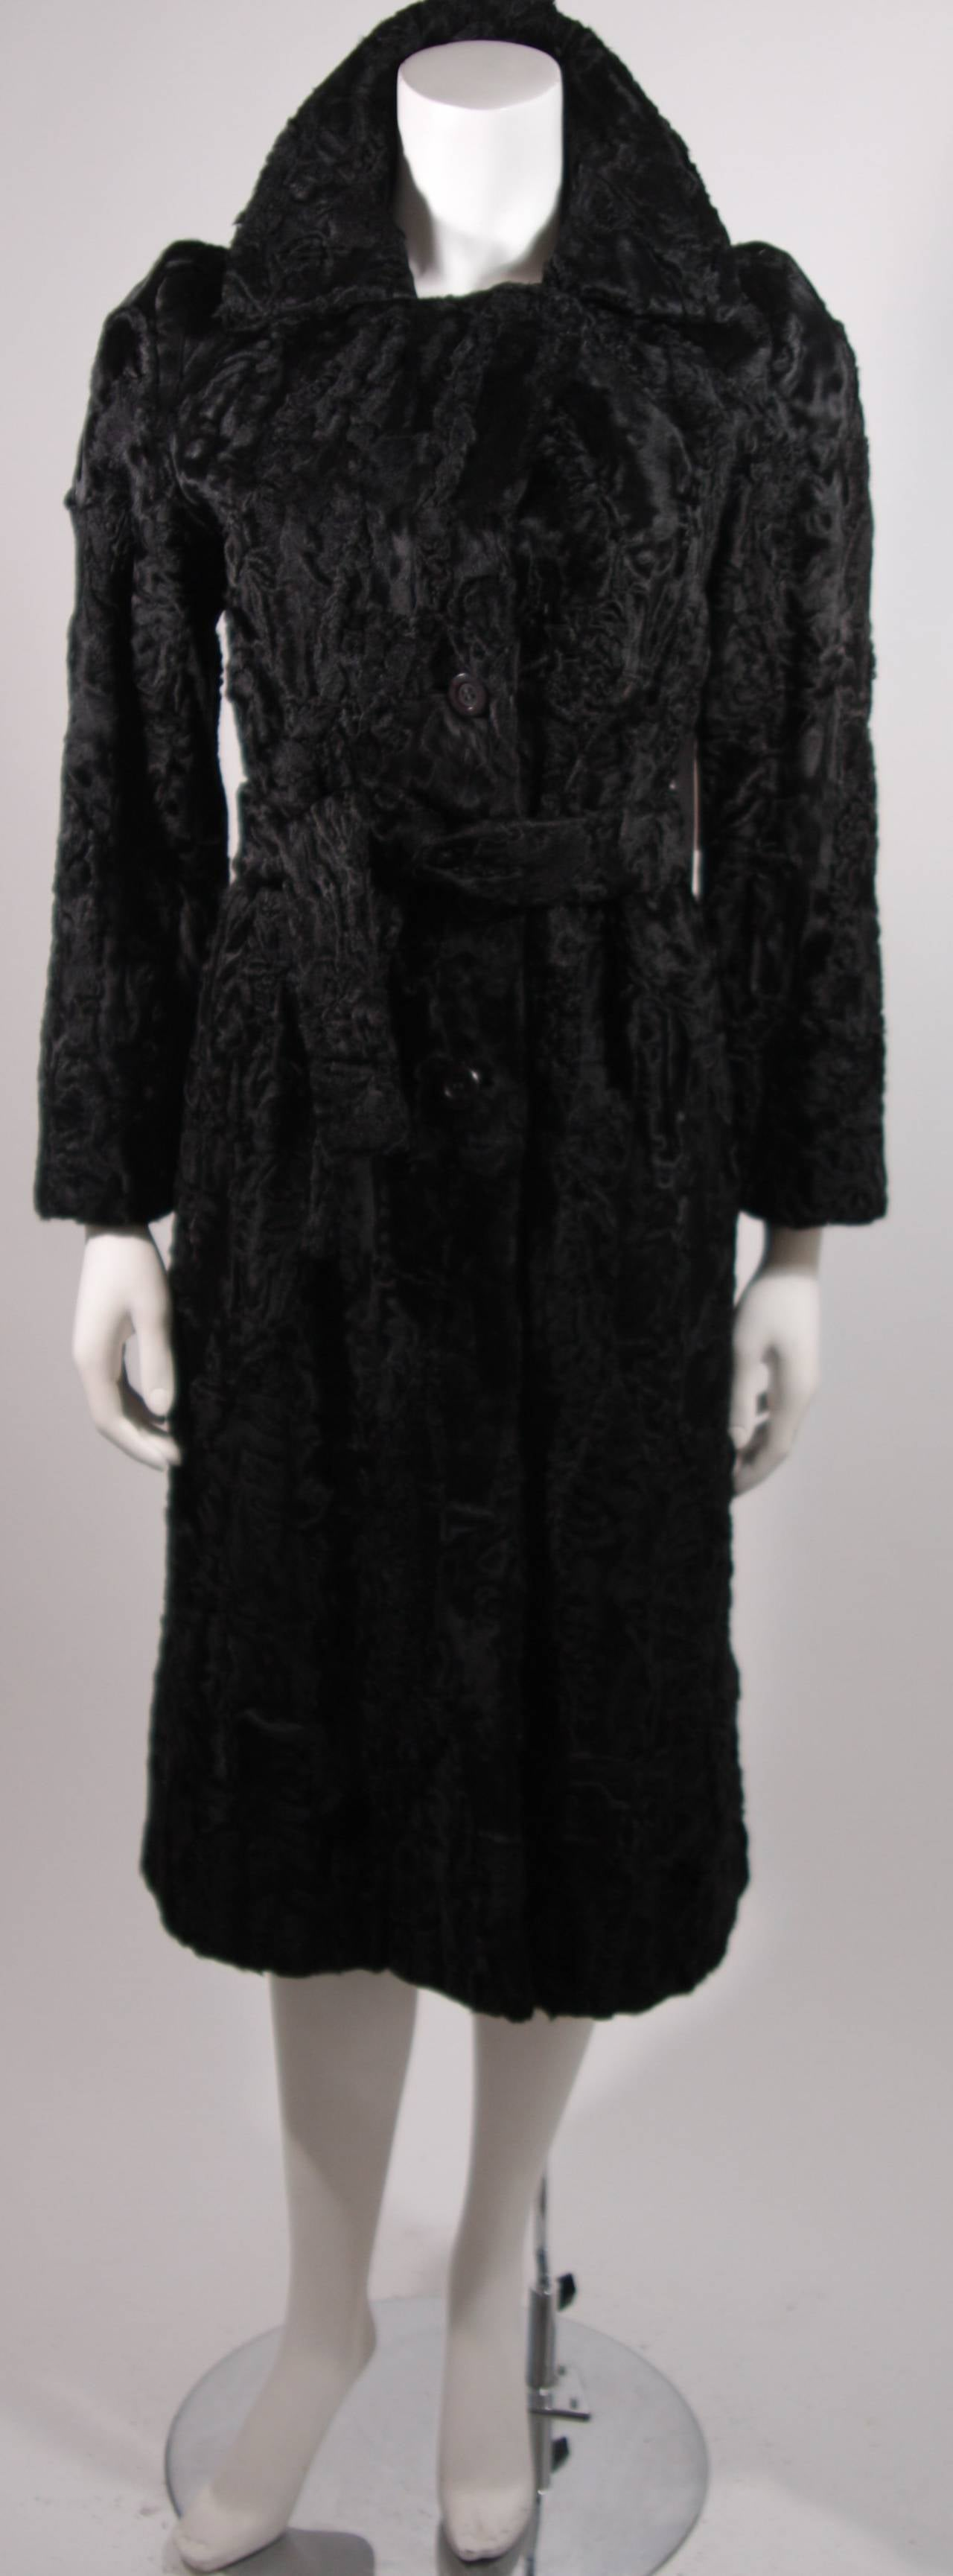 This is a stunning Donald Brooks coat. The coat is composed of a black Russian Broadtail featuring a lovely collar which may be styled up or down. There are center front buttons, two side pockets, and a wonderful waist tie belt. The back of the